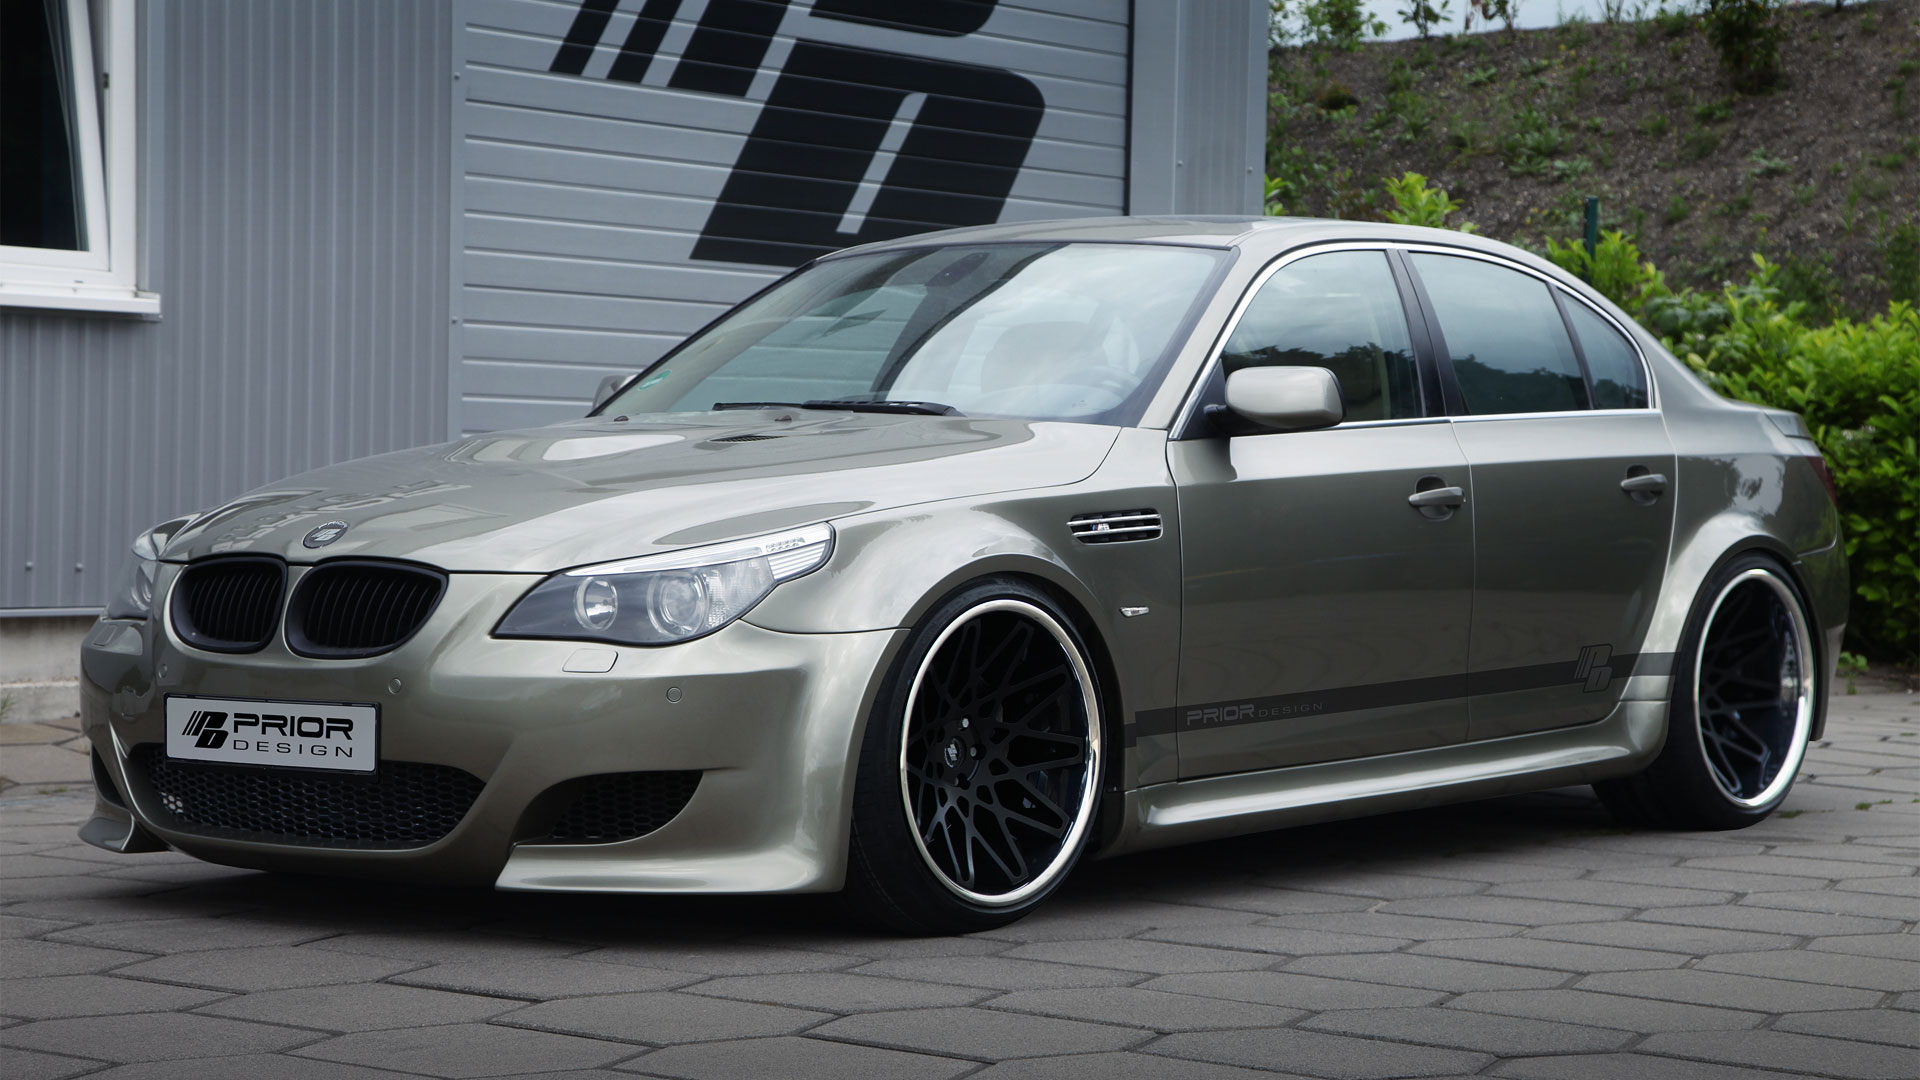 Bmw 5 Series M5 E60 Limousine Tuning Pdm5 Widebody Aerodynamic Kit M D Exclusive Cardesign